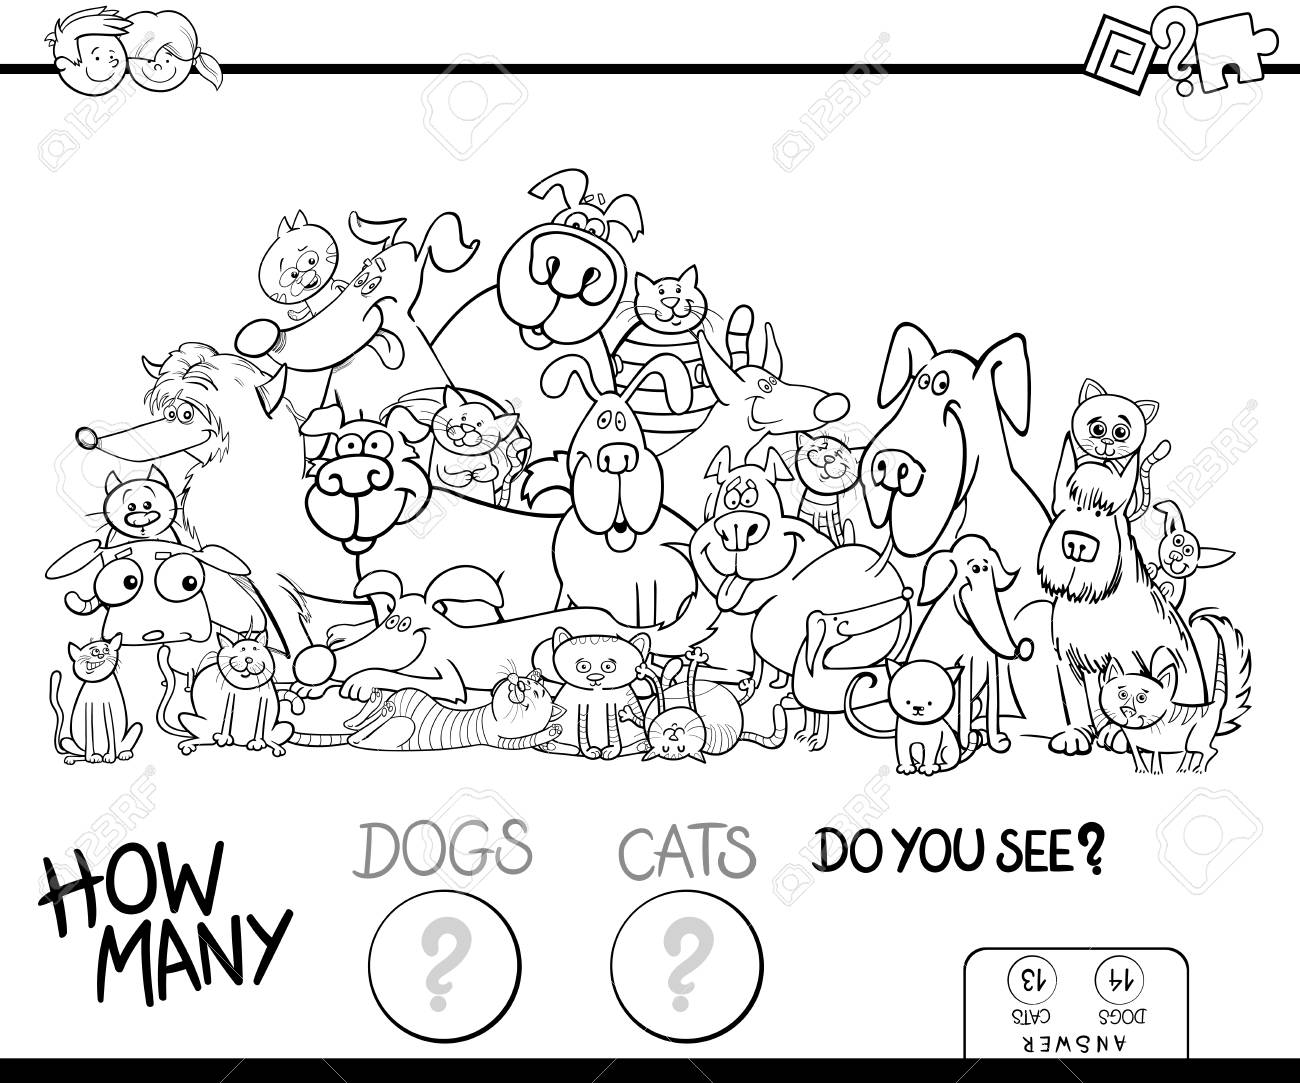 Black And White Cartoon Illustration Of Educational Counting Game For Children With Cats Dogs Animal